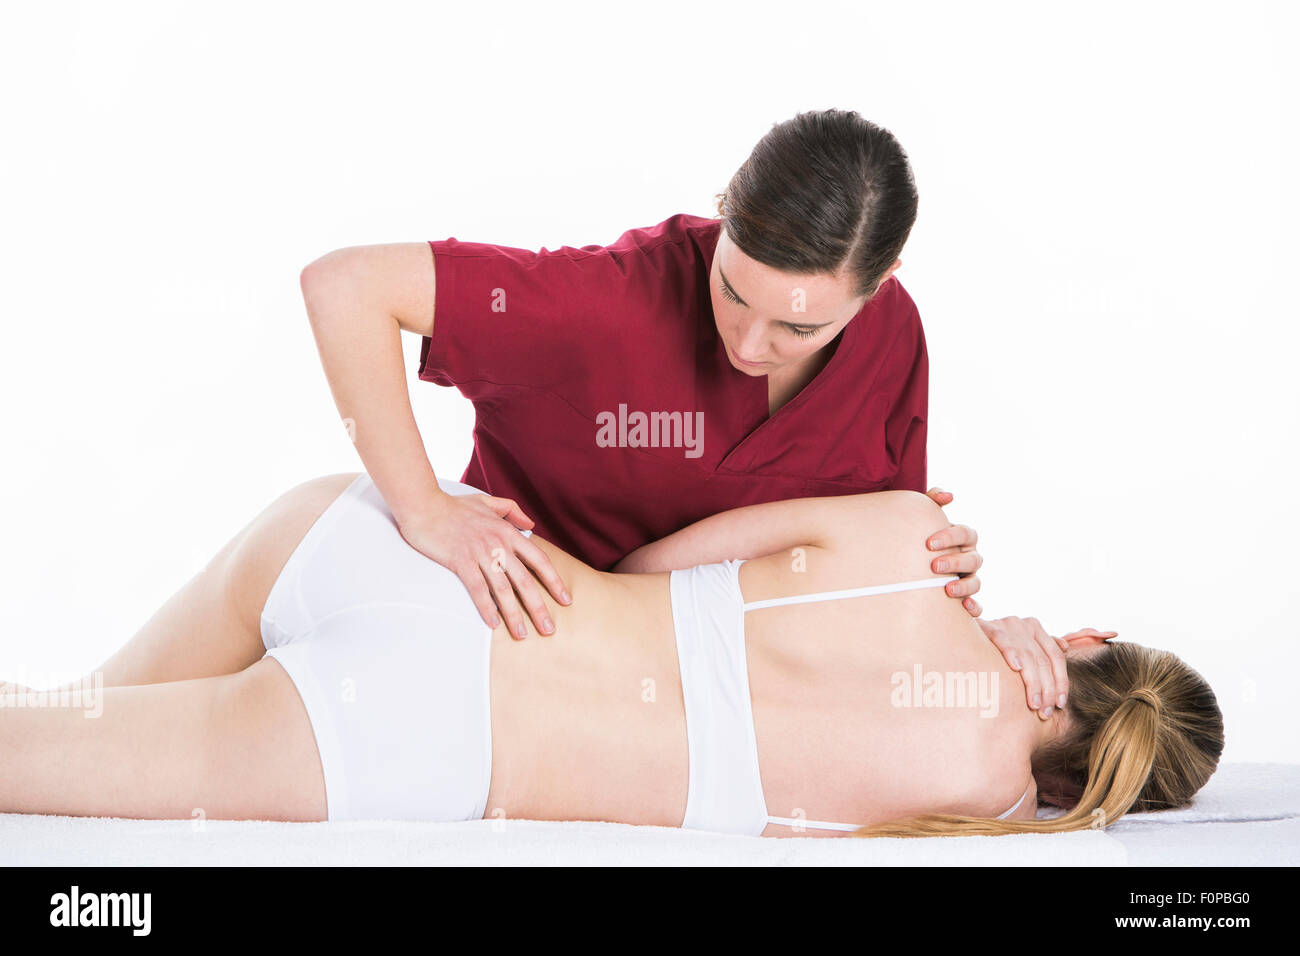 physical therapist gets spinal mobilization to a woman patient - Stock Image